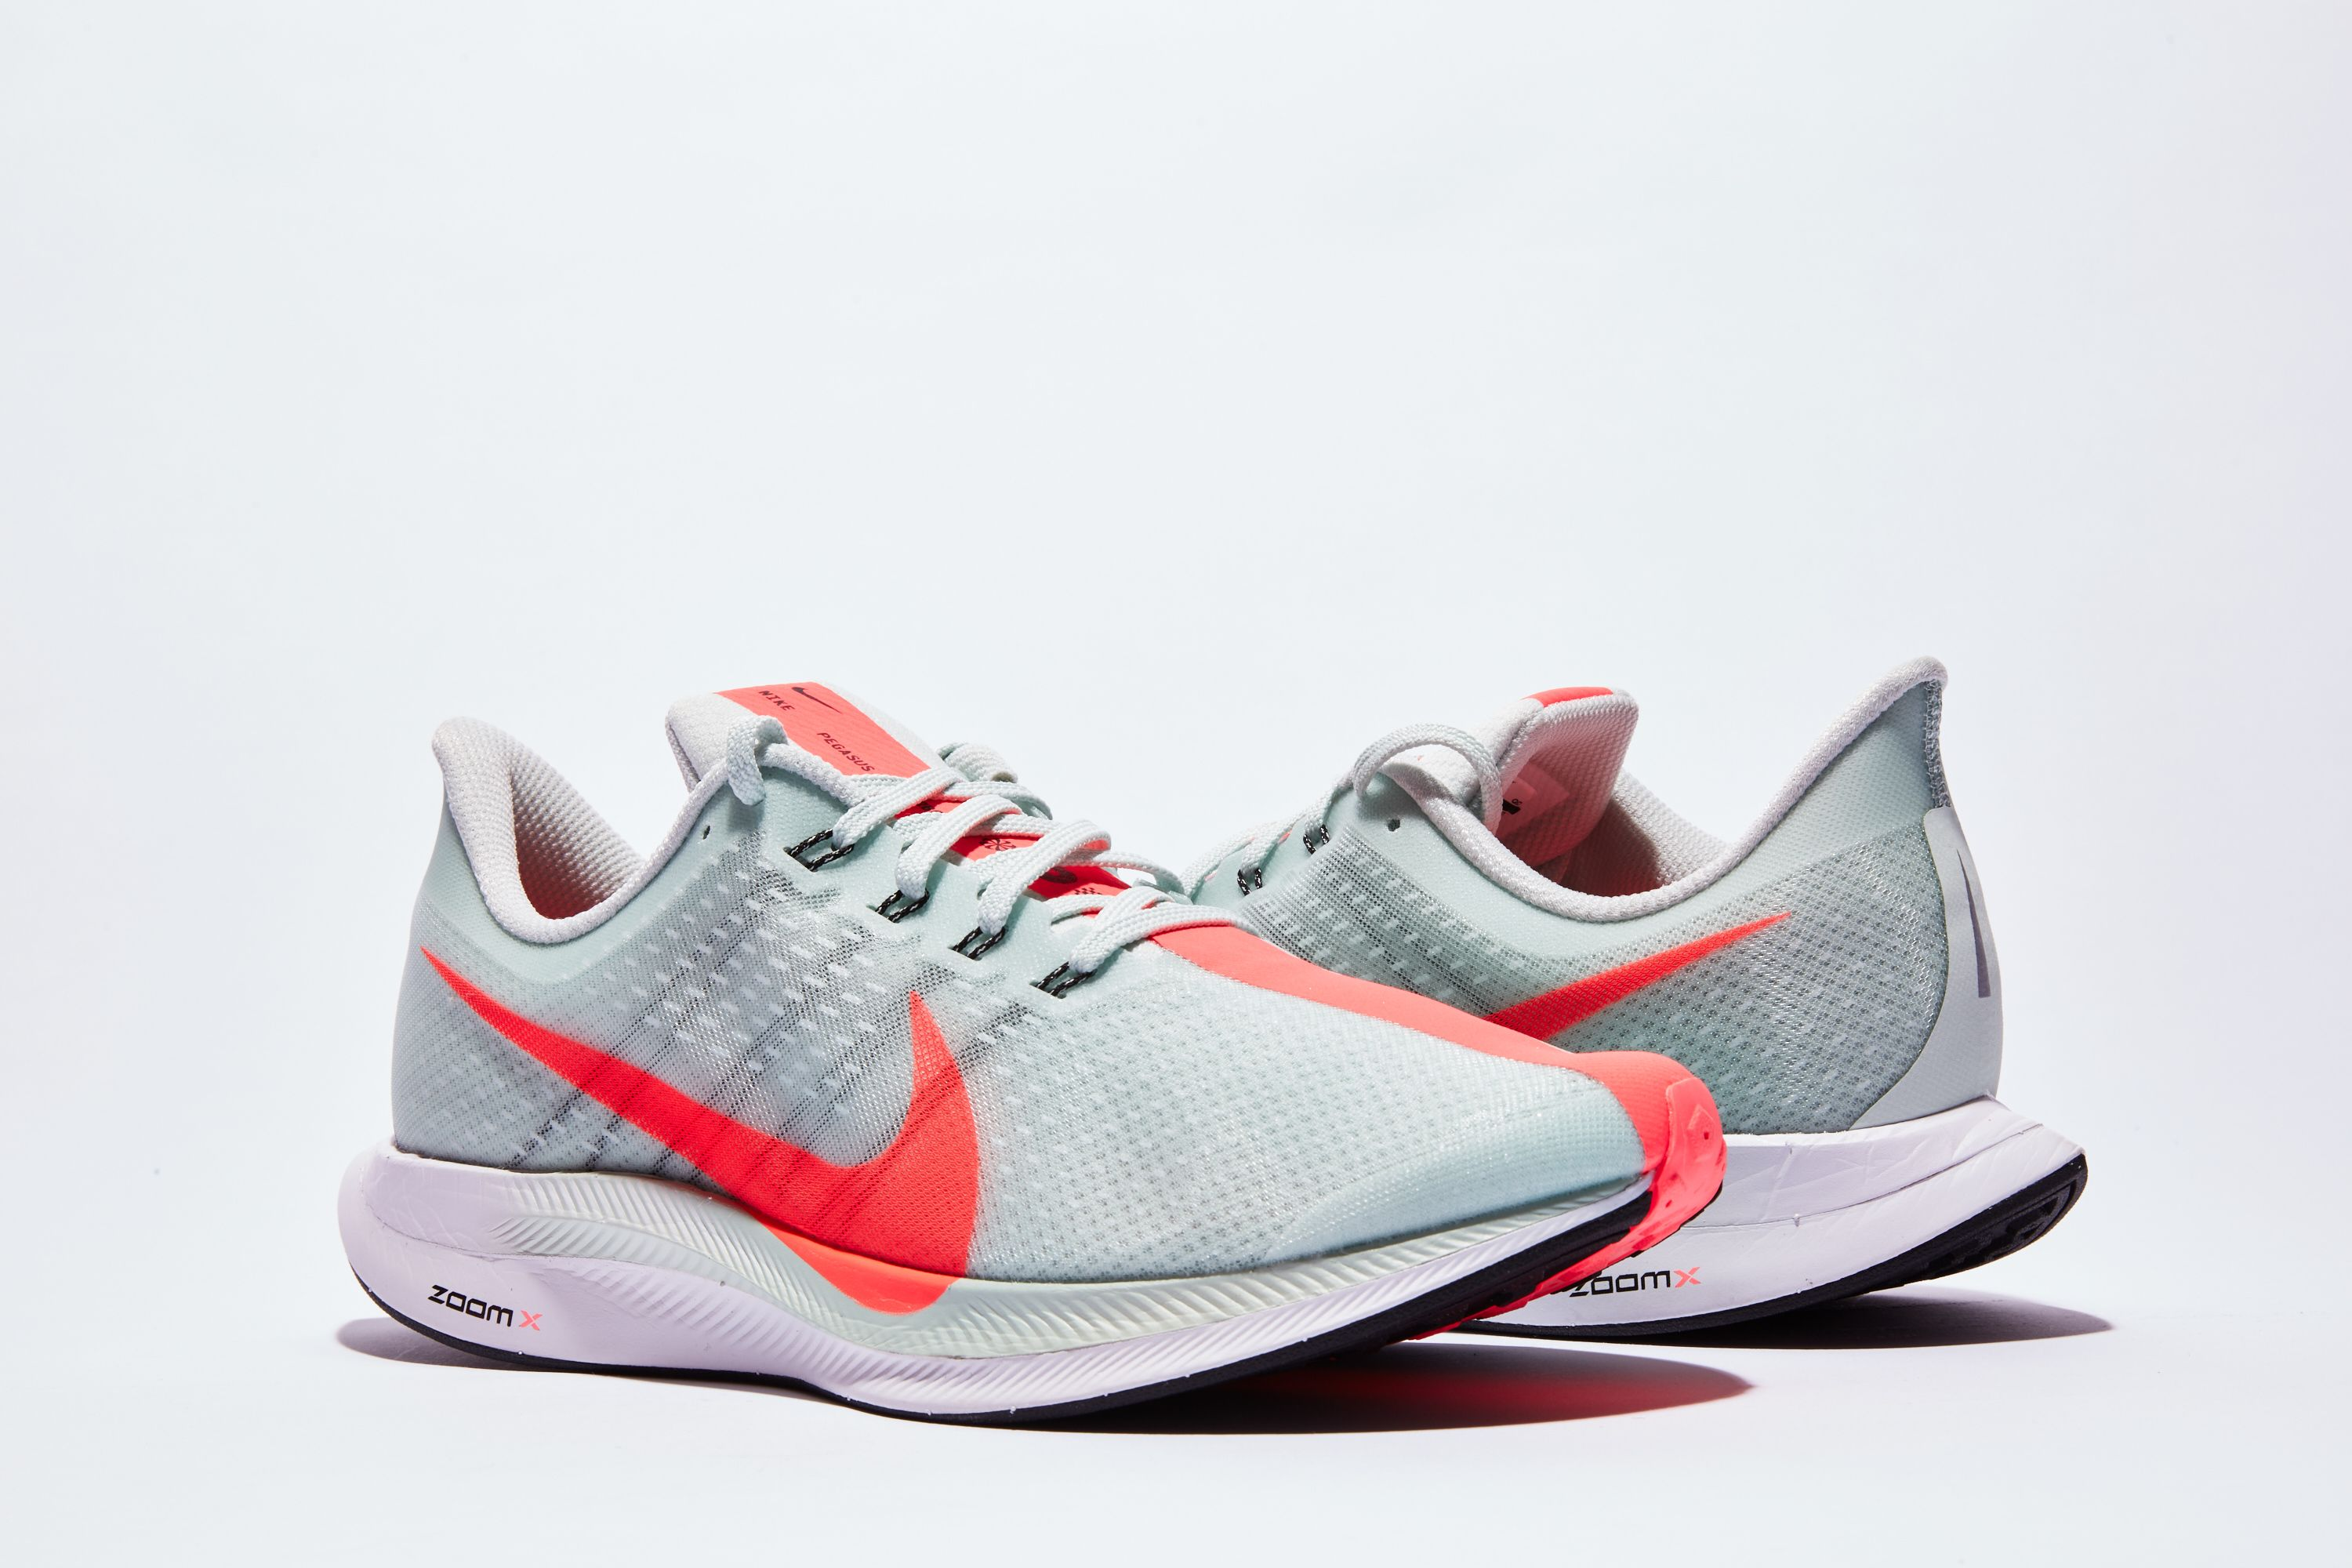 Nike Zoom Pegasus 35 Turbo - Running Shoes for Speed